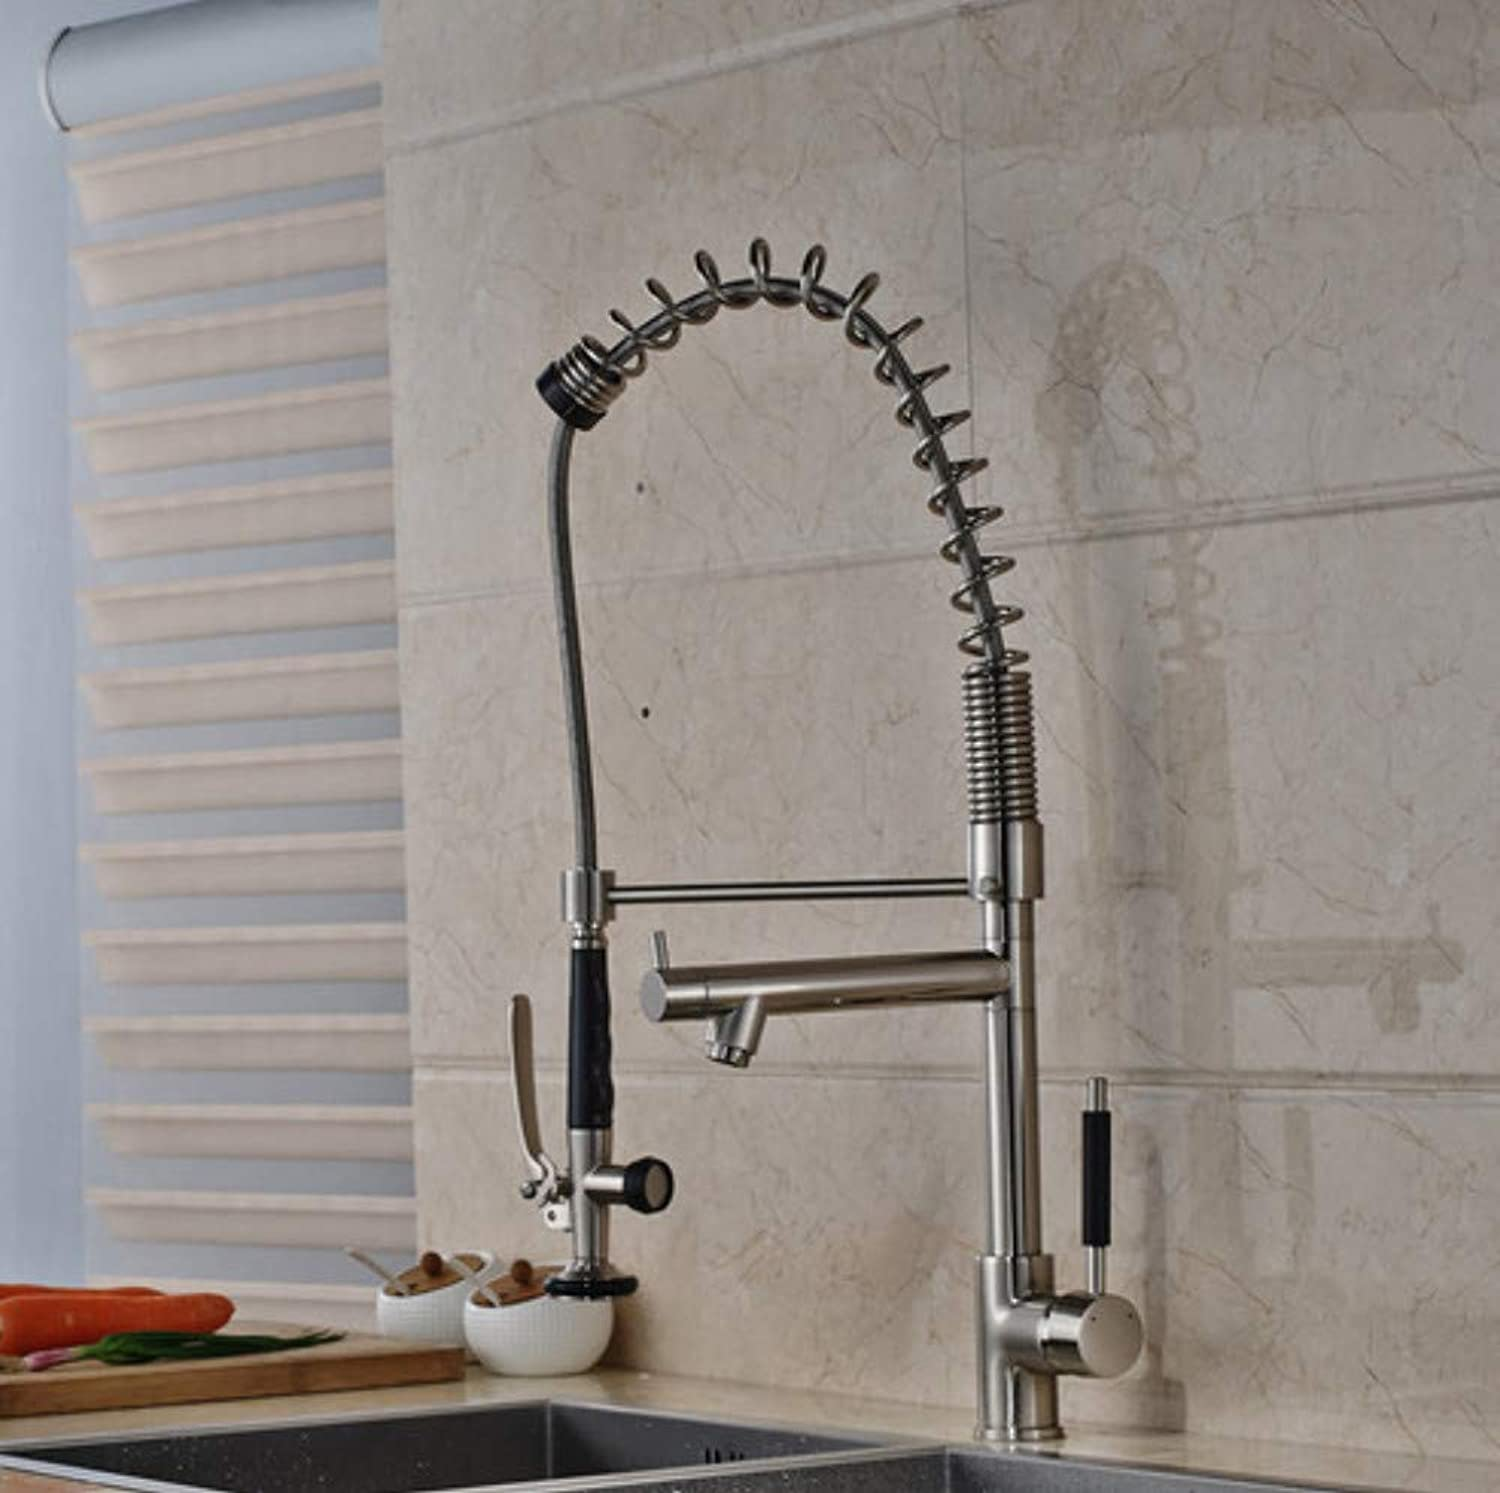 CZOOR Luxury Deck Mounted Spring Kitchen Water Taps Two Spout Brushed Nickel Kitchen Mixer Faucet Single Handle